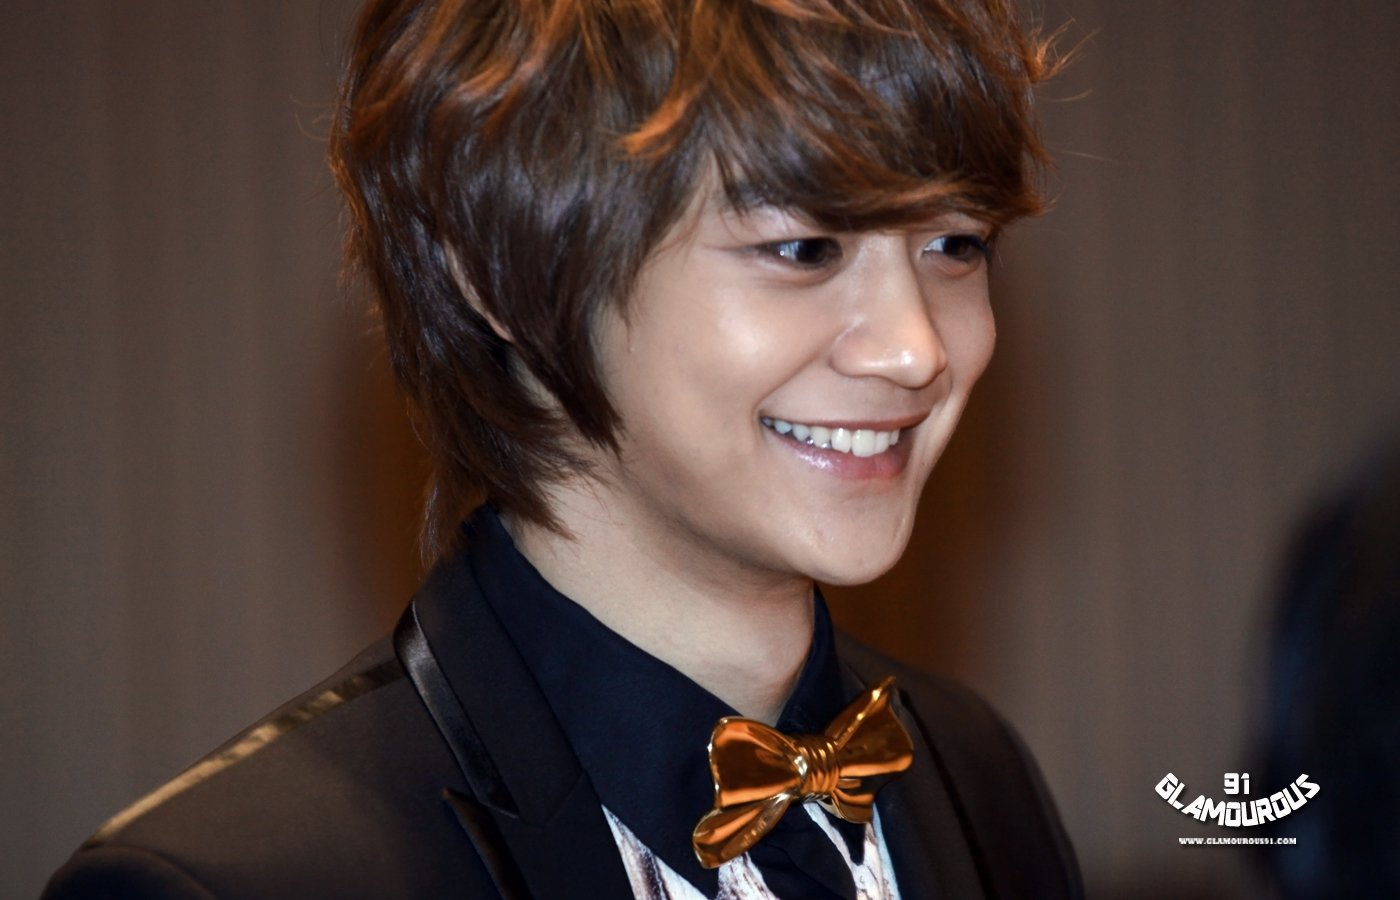 MINHO Salamander Guru Press Conference 120116 1400x900